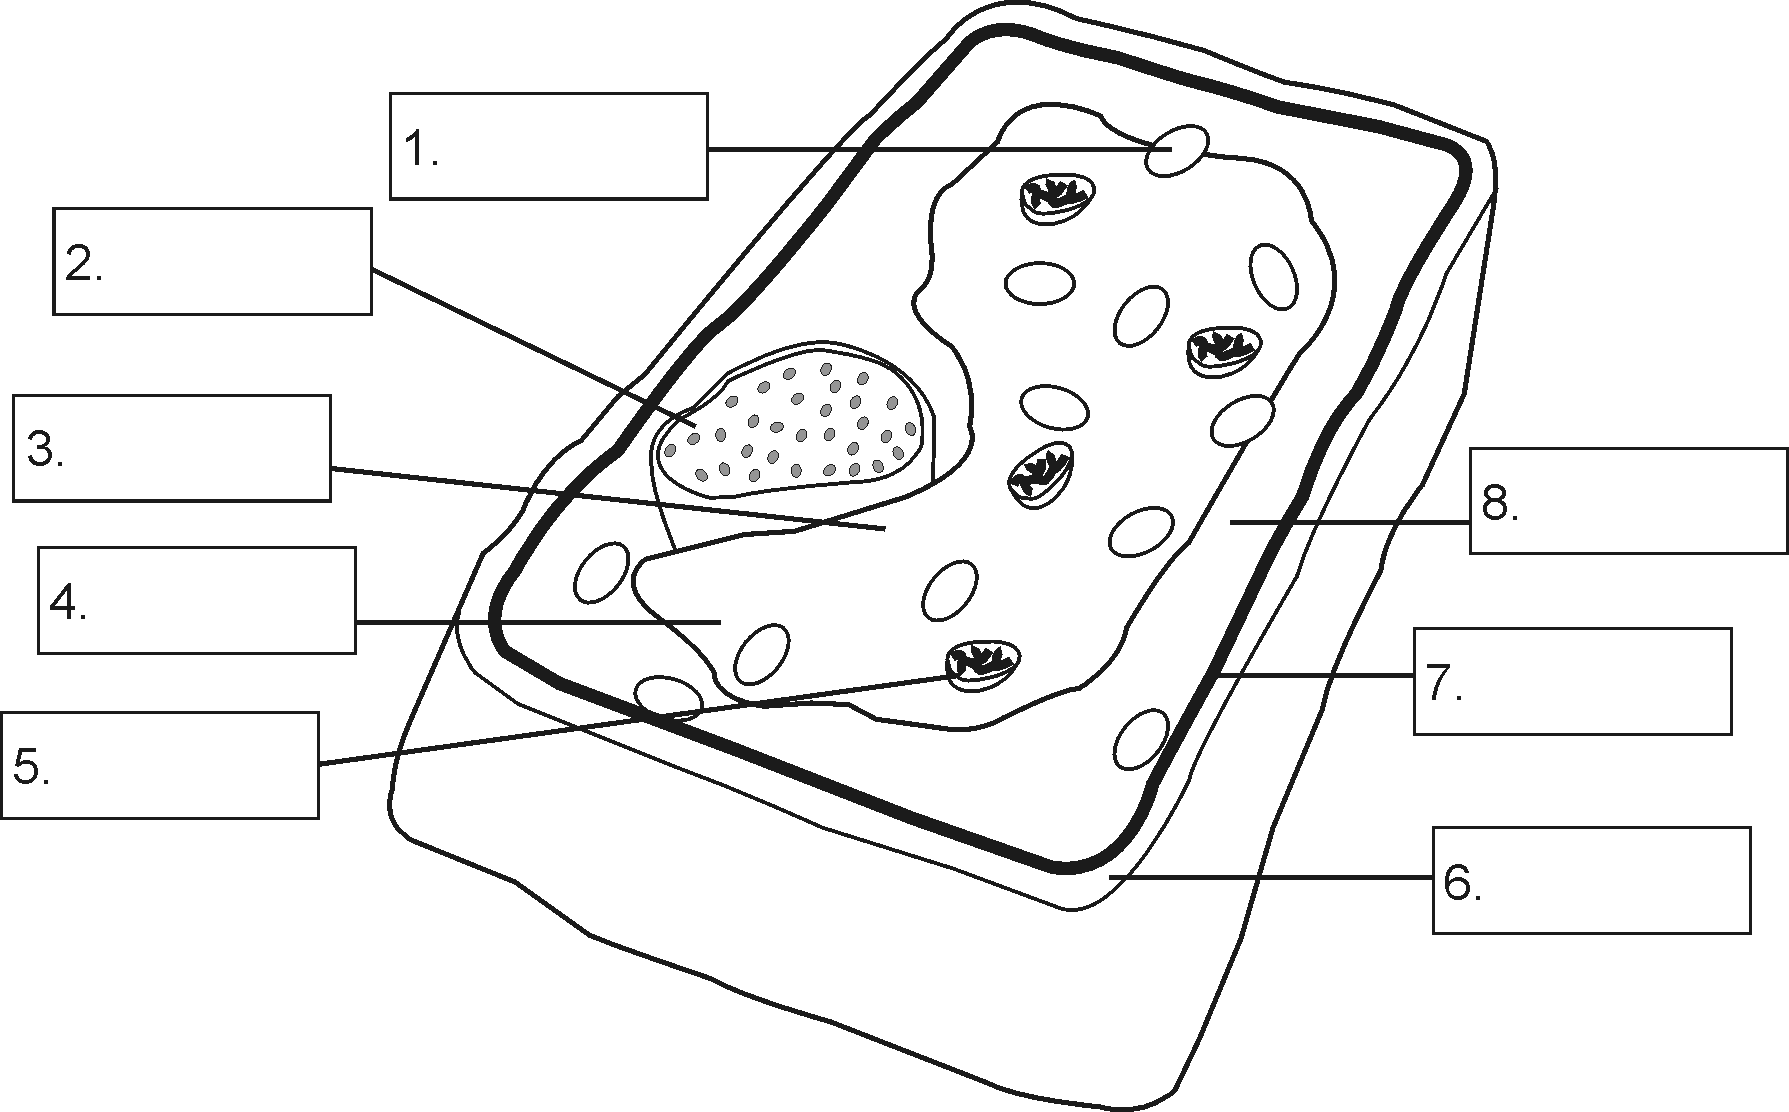 Plant Cell Diagram Without Labels Sketch Coloring Page